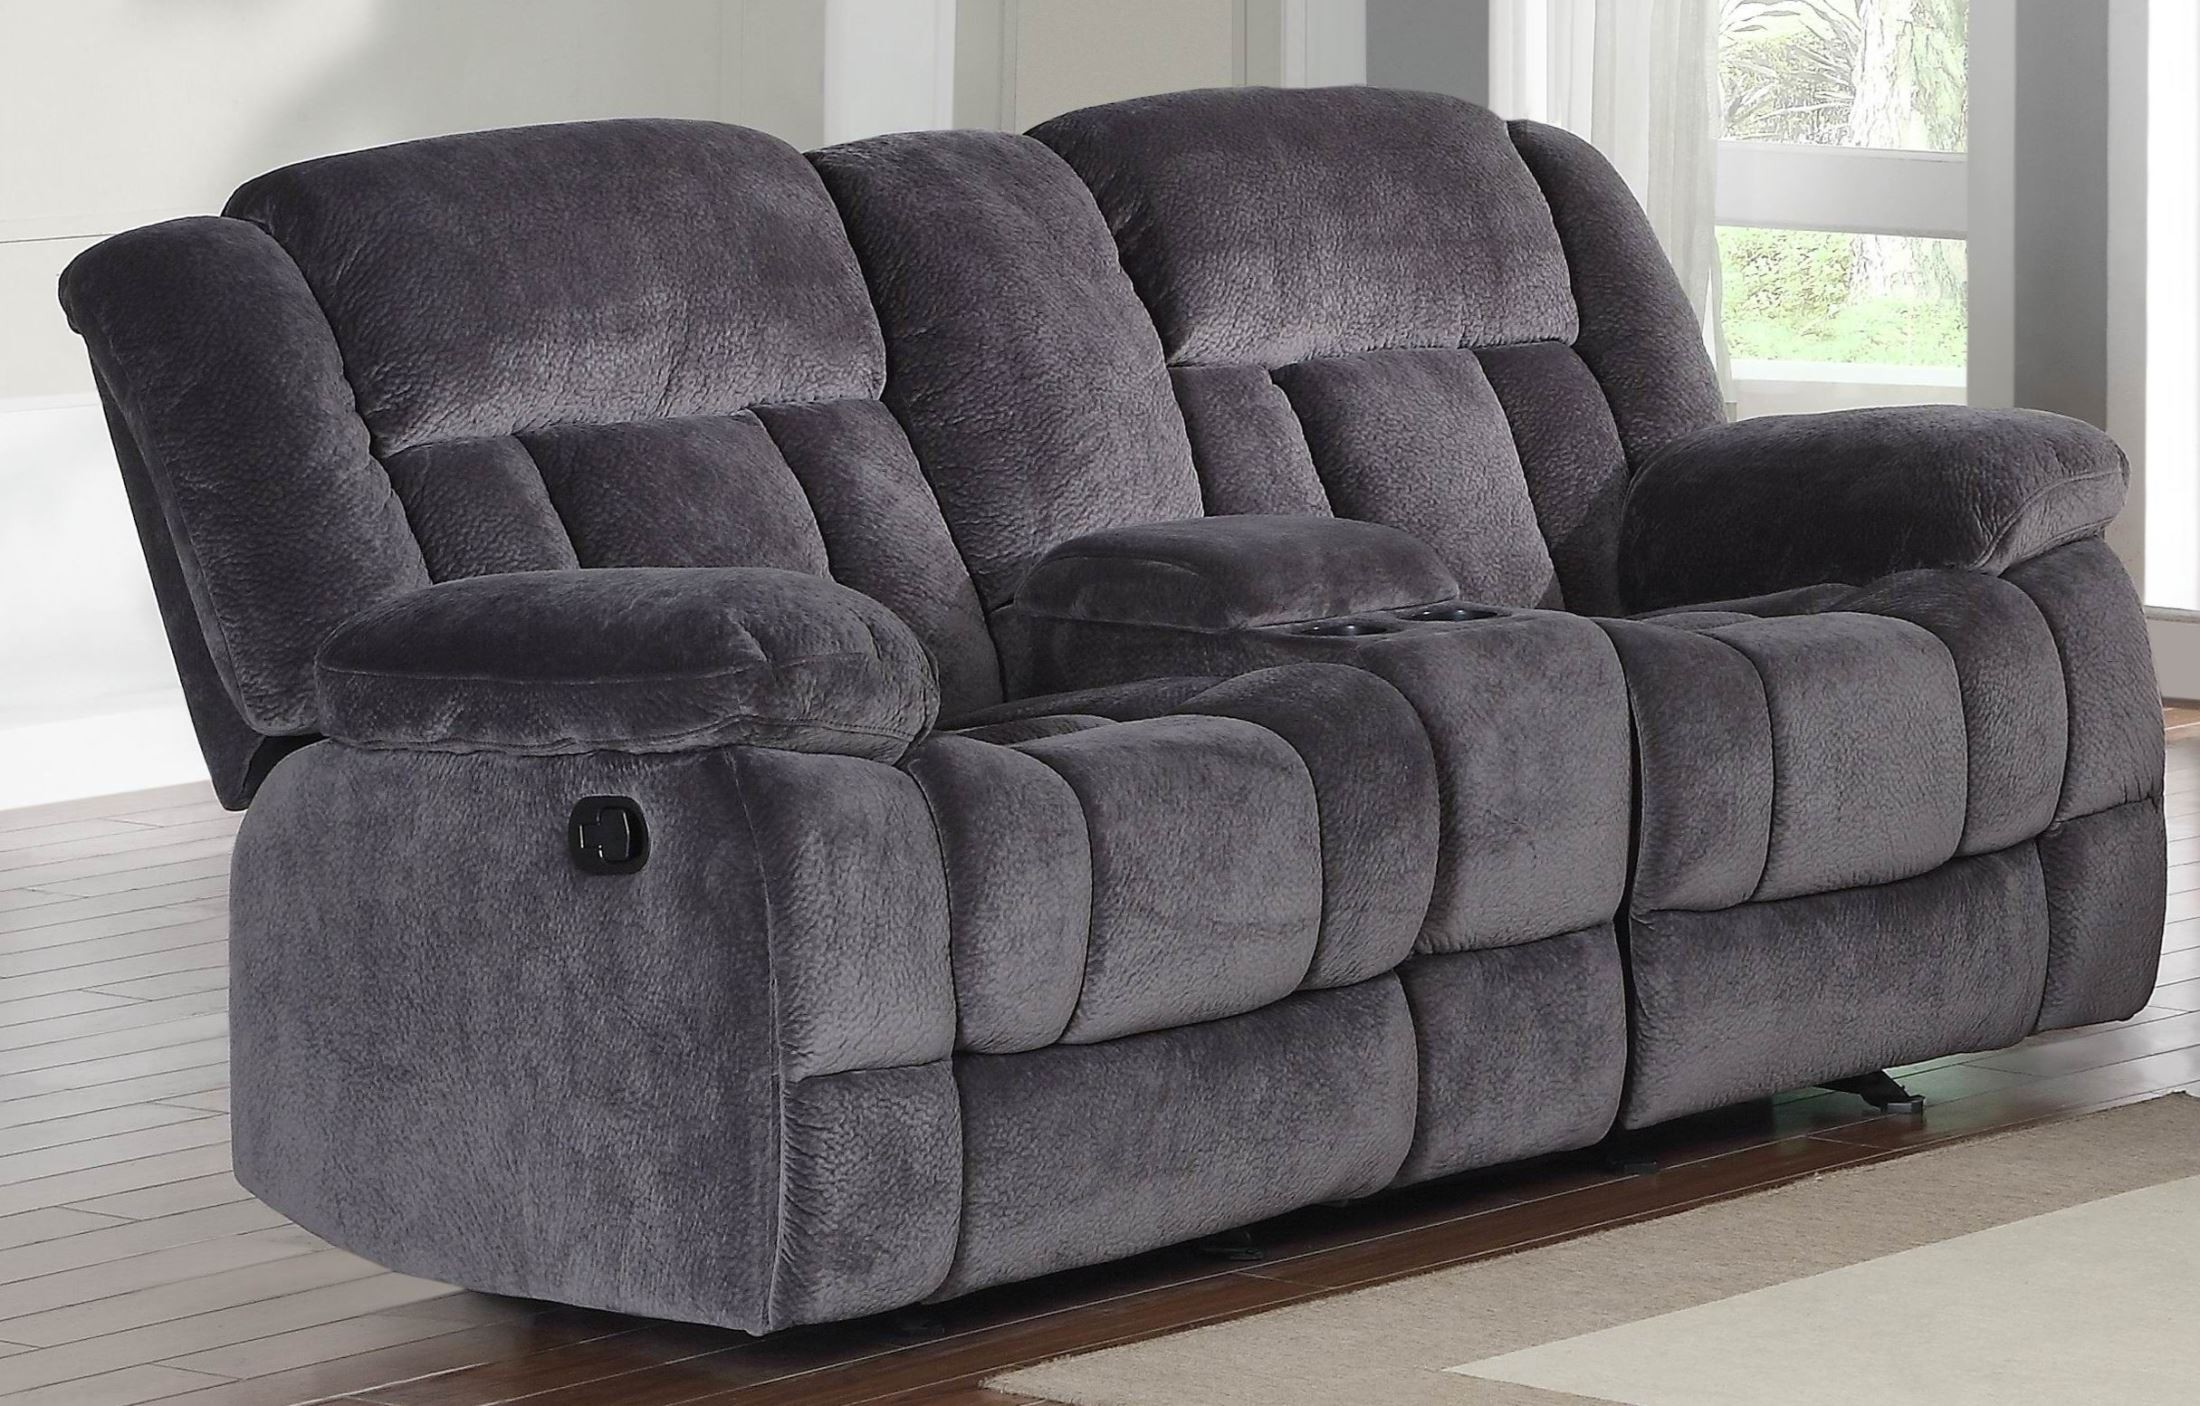 Sofa Reclinable Doble Laurelton Doble Glider Reclining Loveseat With Center